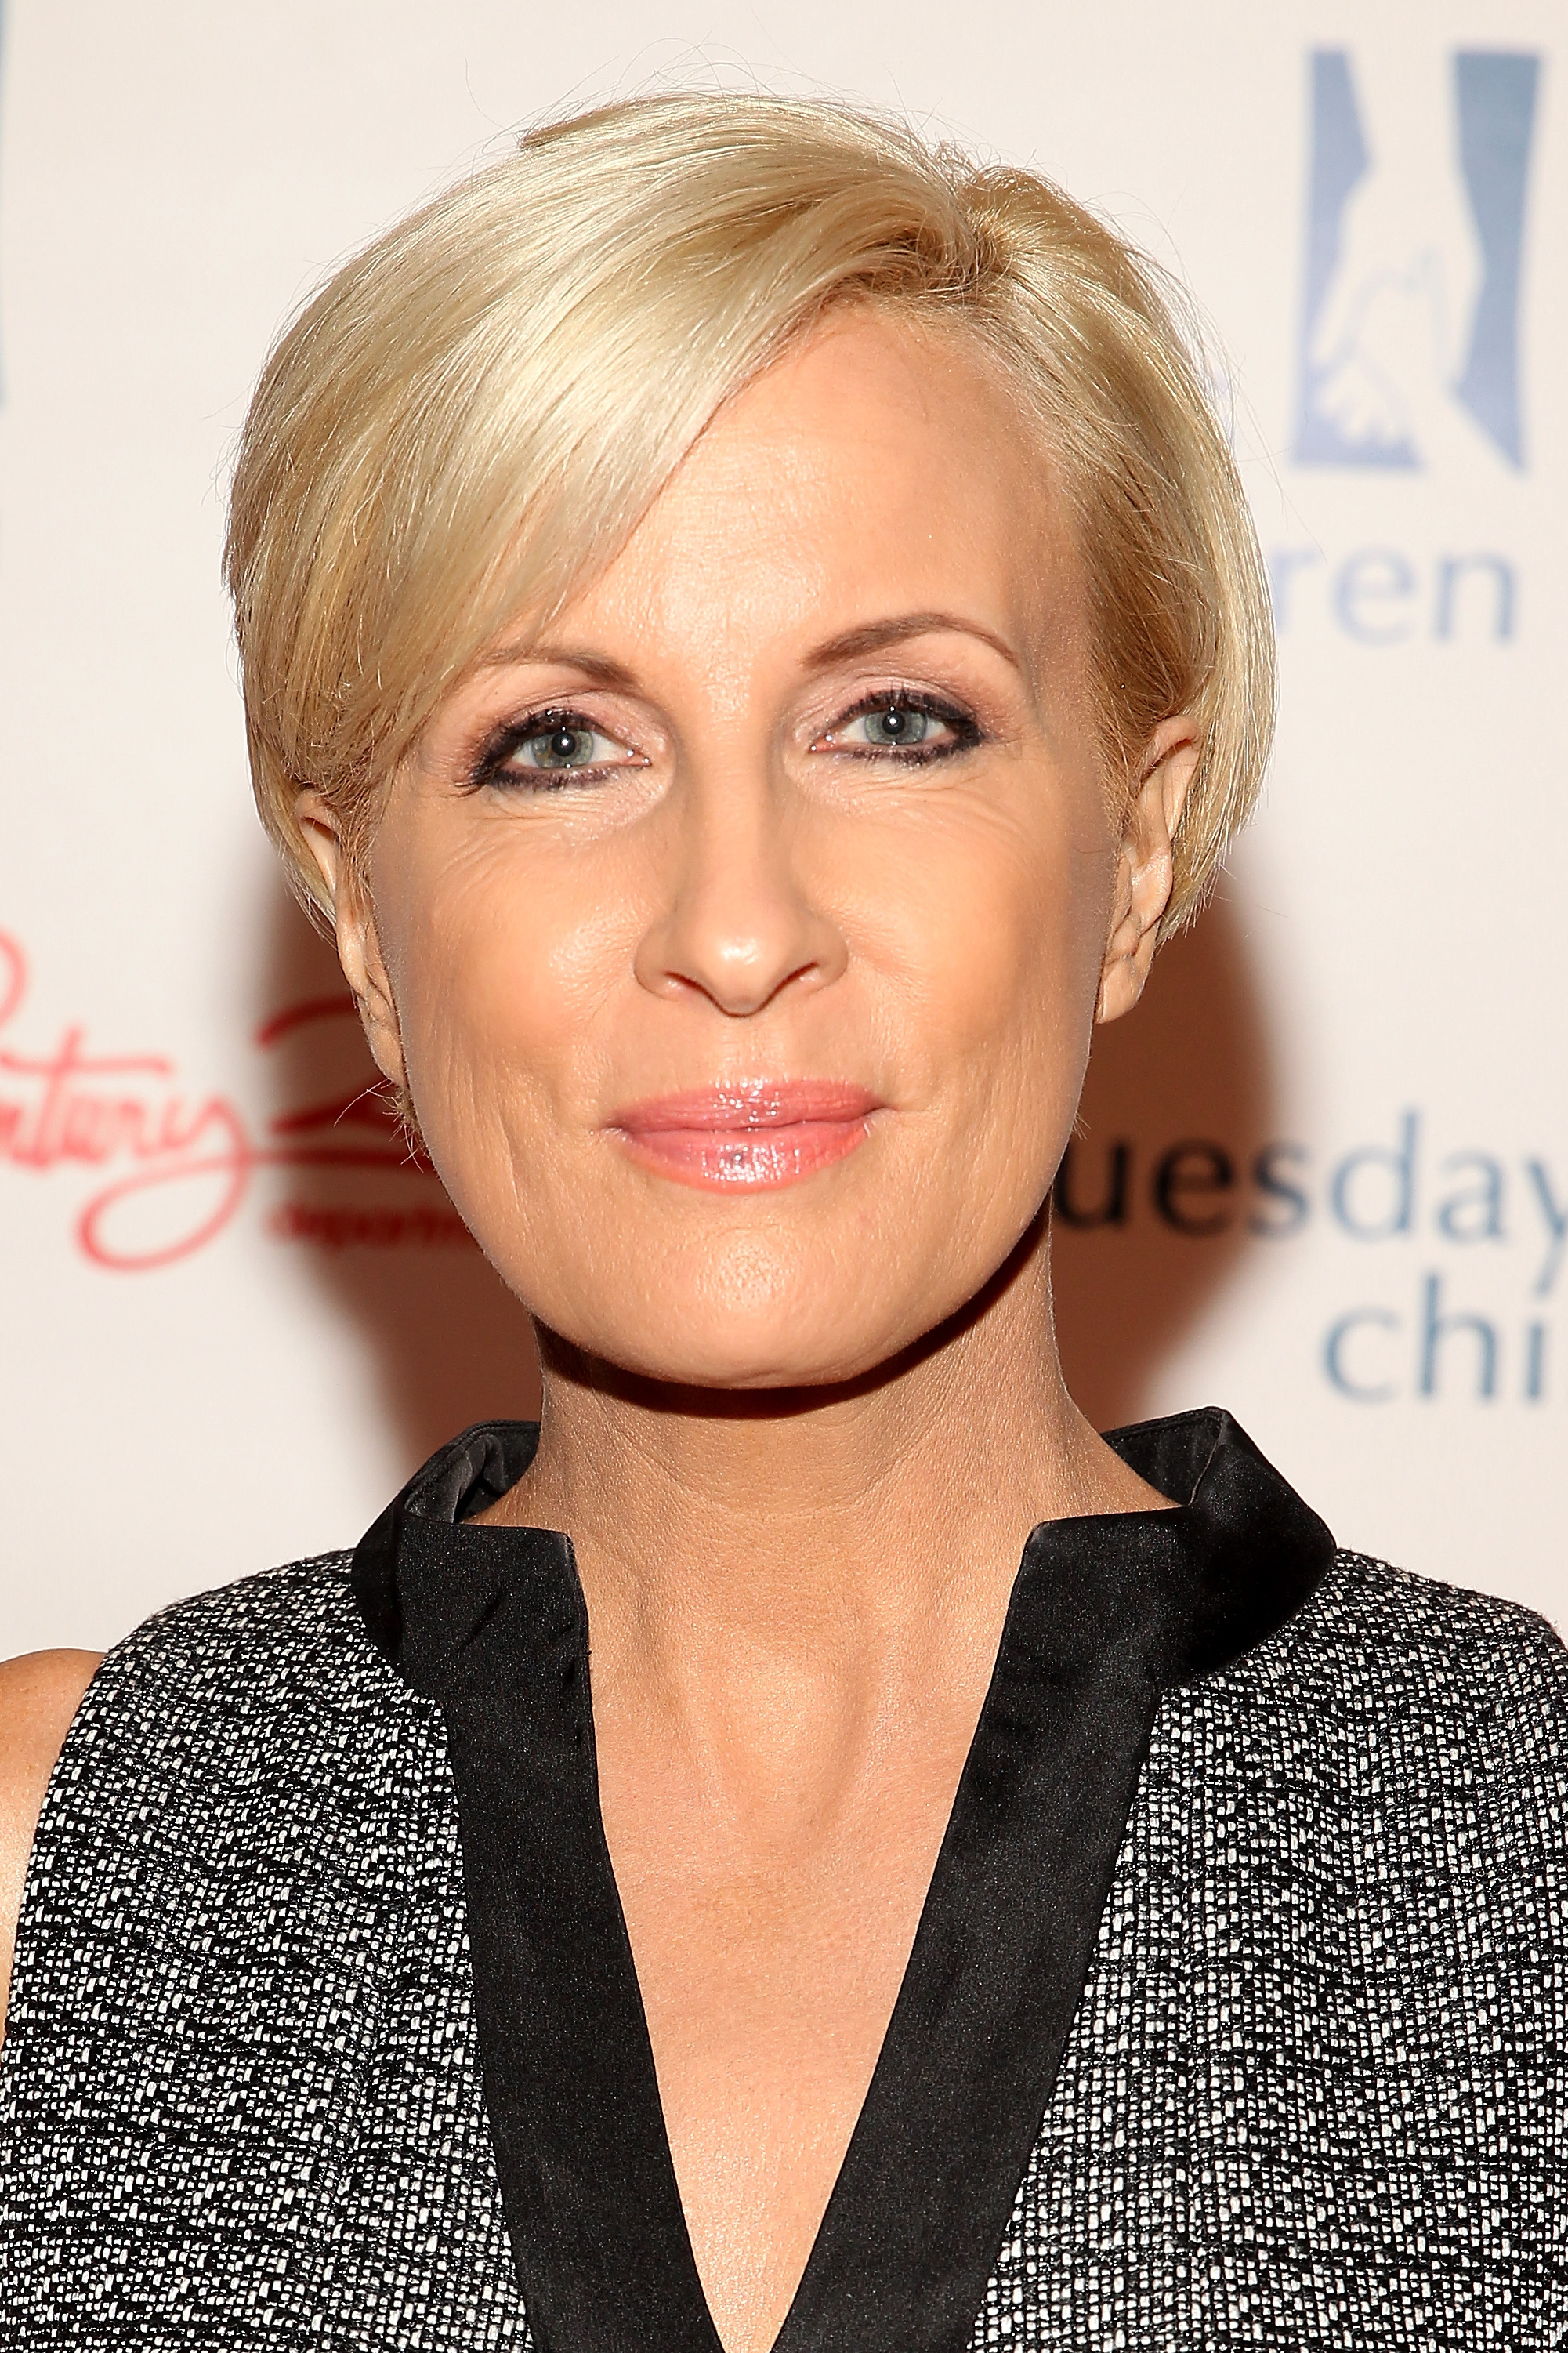 TV host Mika Brzezinski attends Children Roots of Resilience Gala on Sept. 9, 2014 in New York City.